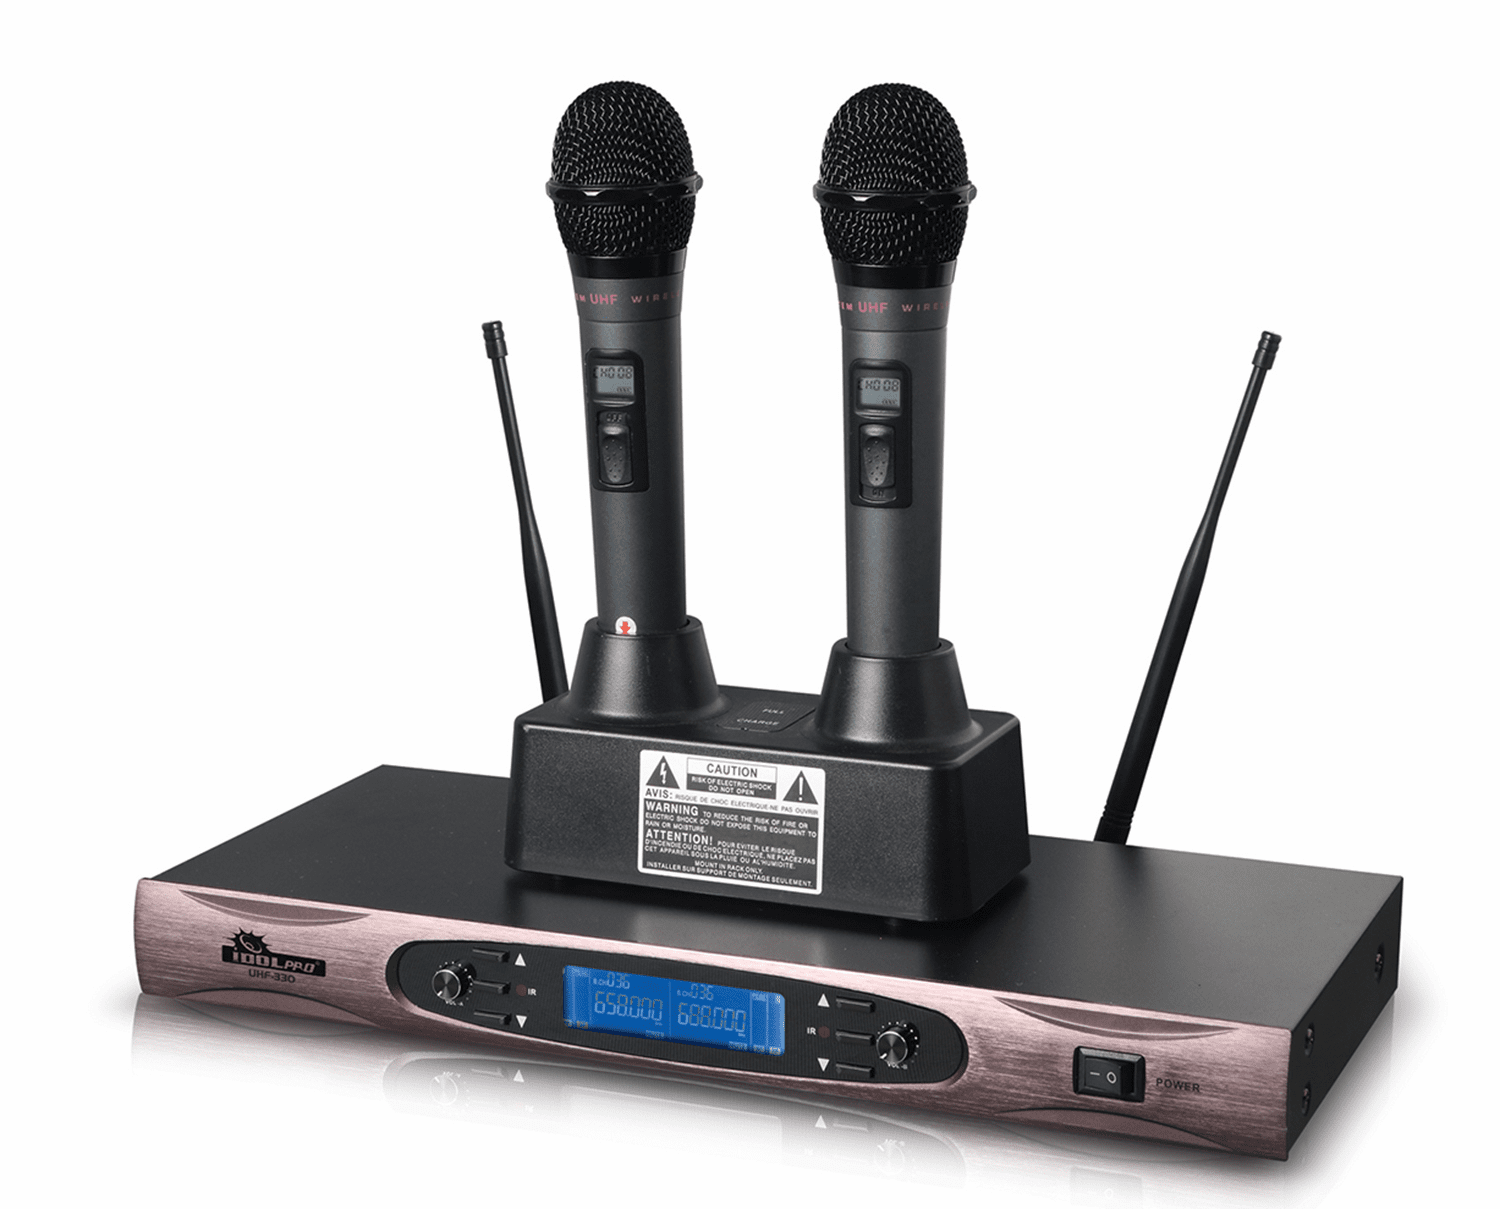 IDOLpro UHF-330 Dual Rechargeable Professional Wireless Microphones